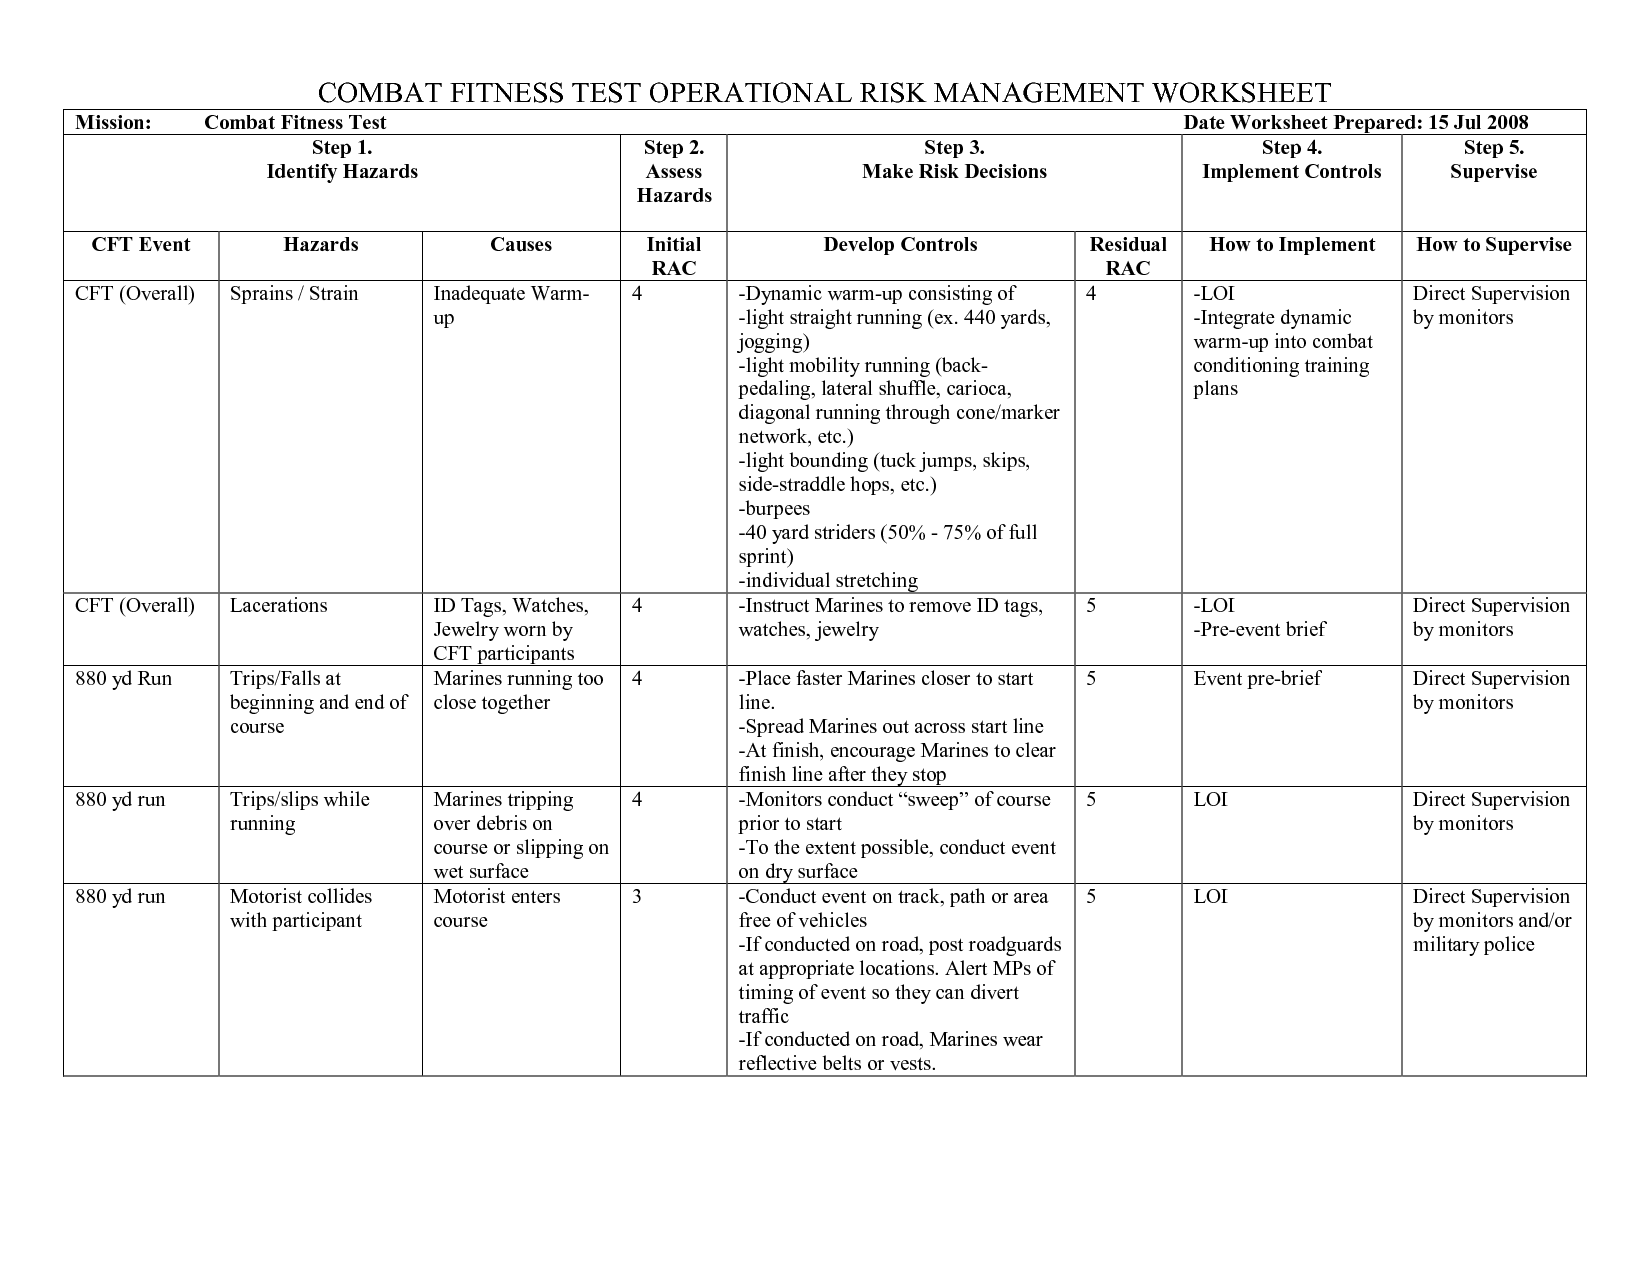 Operational Risk Management Worksheet